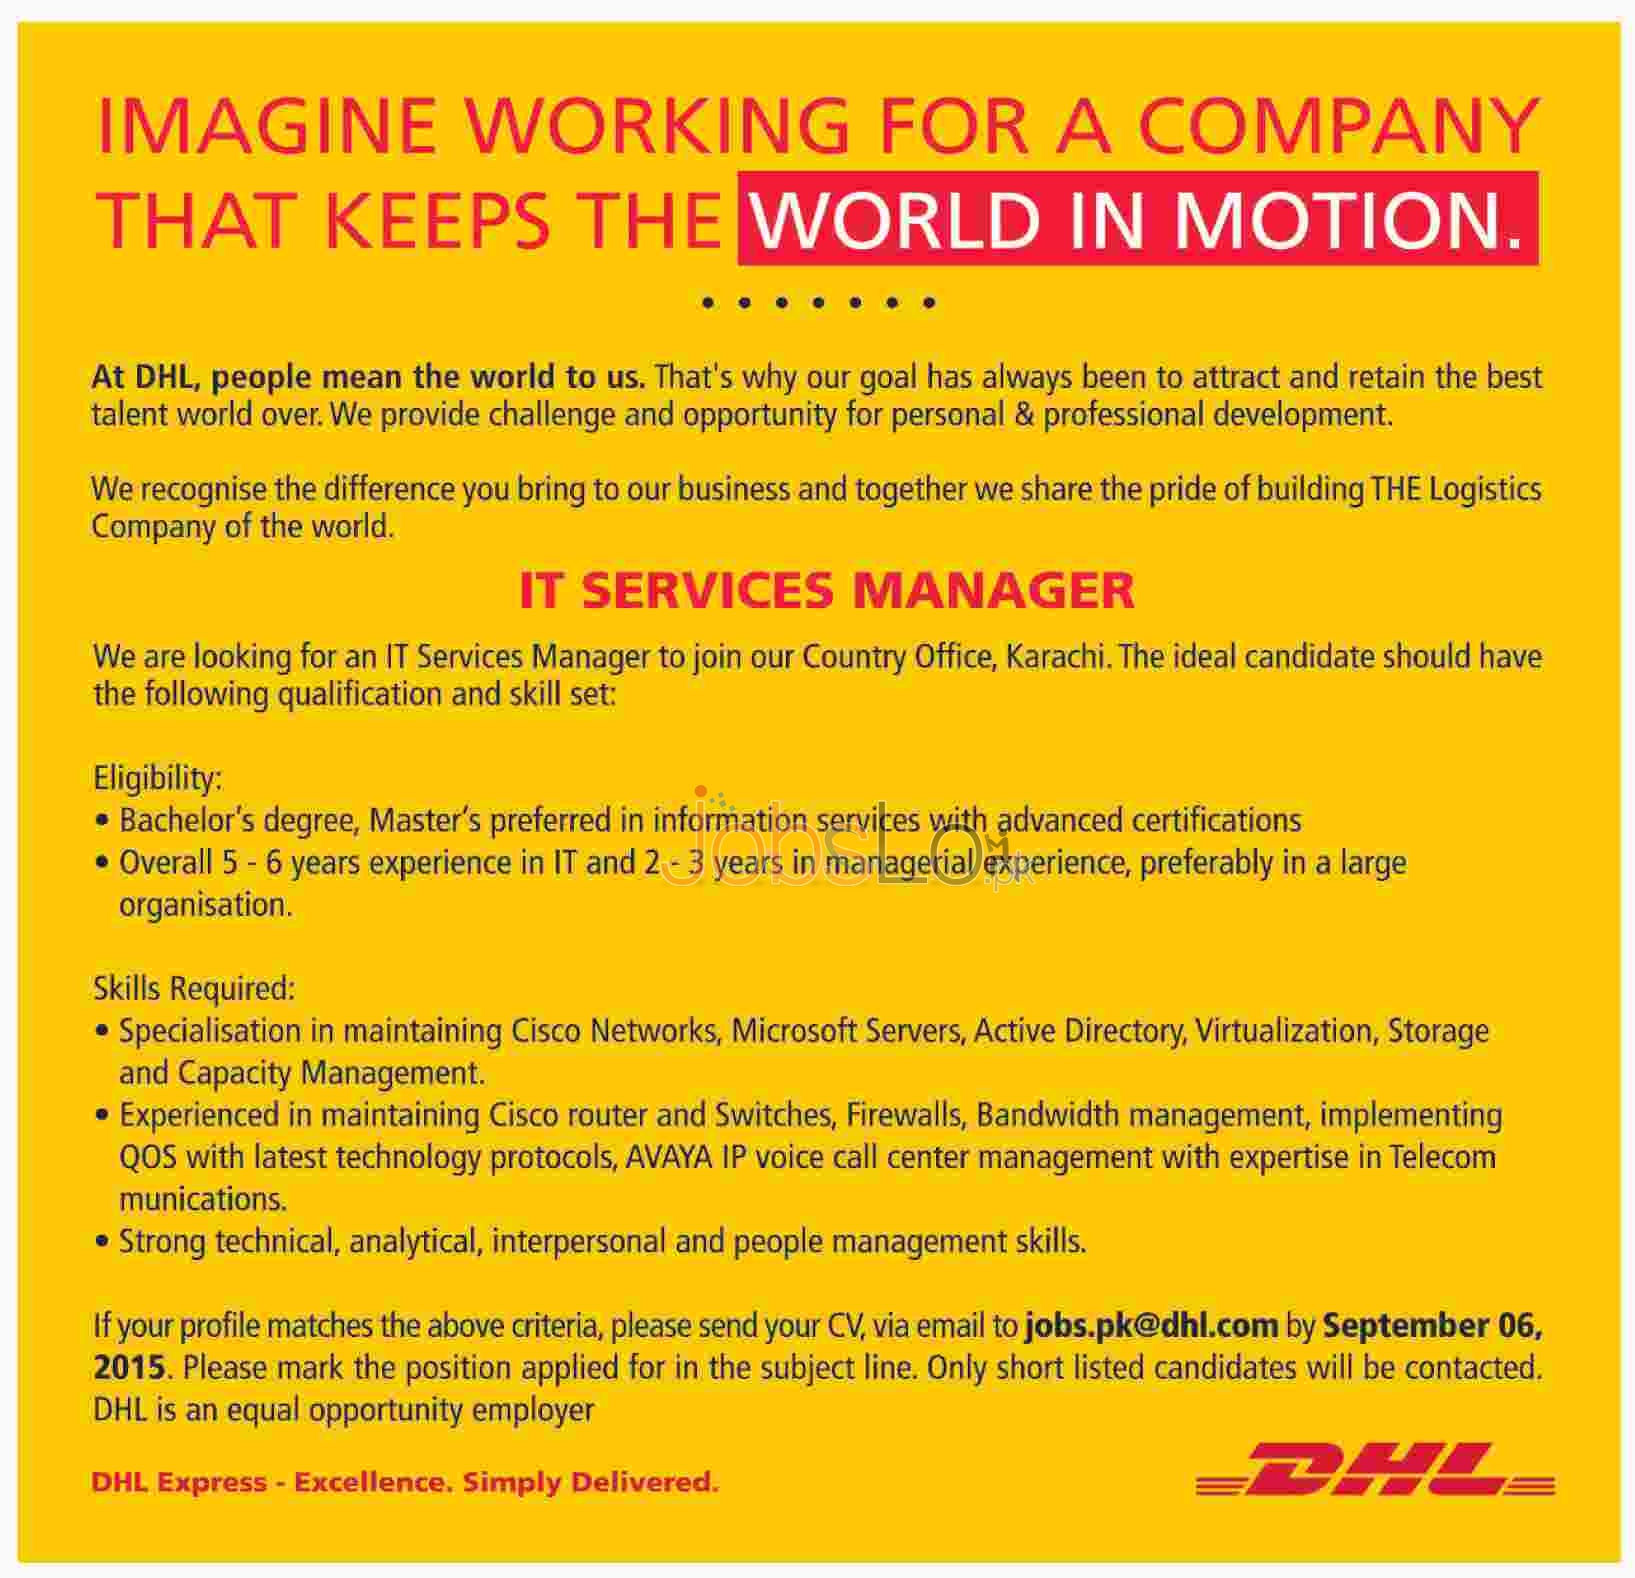 DHL-stan Job Application Form Dhl on boeing job application, us postal service job application, usps job application, shell job application, microsoft job application, bank of america job application, at&t job application, fedex job application, express job application, ups job application, caterpillar job application, porsche job application, holiday inn job application, samsung job application, pfizer job application, google job application, toyota job application, amazon job application, staples job application,